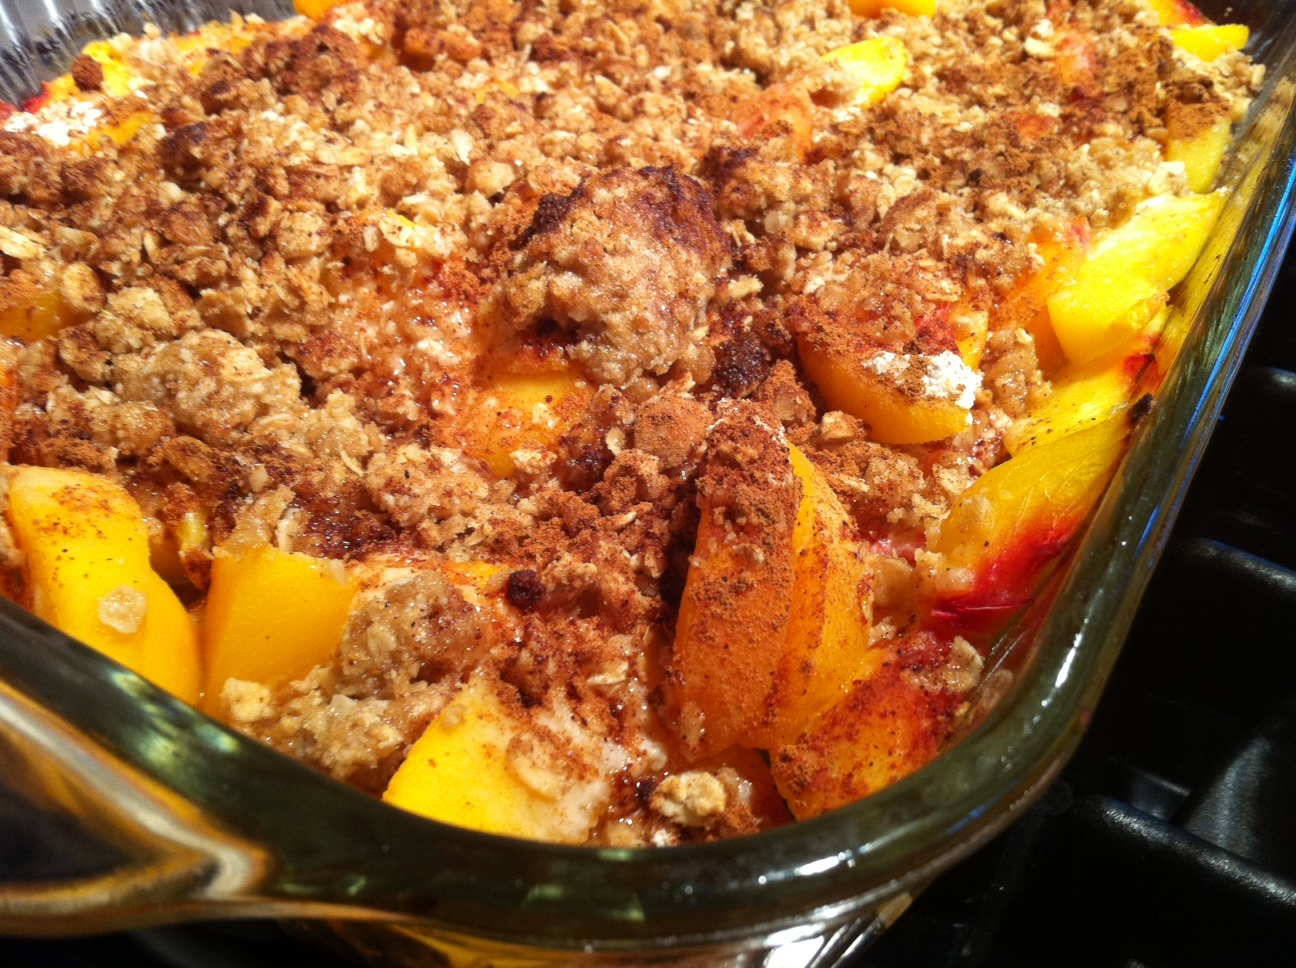 ... Almond Flour, Paleo Peach Crisp, Paleo Peaches Crisps, Free Peaches